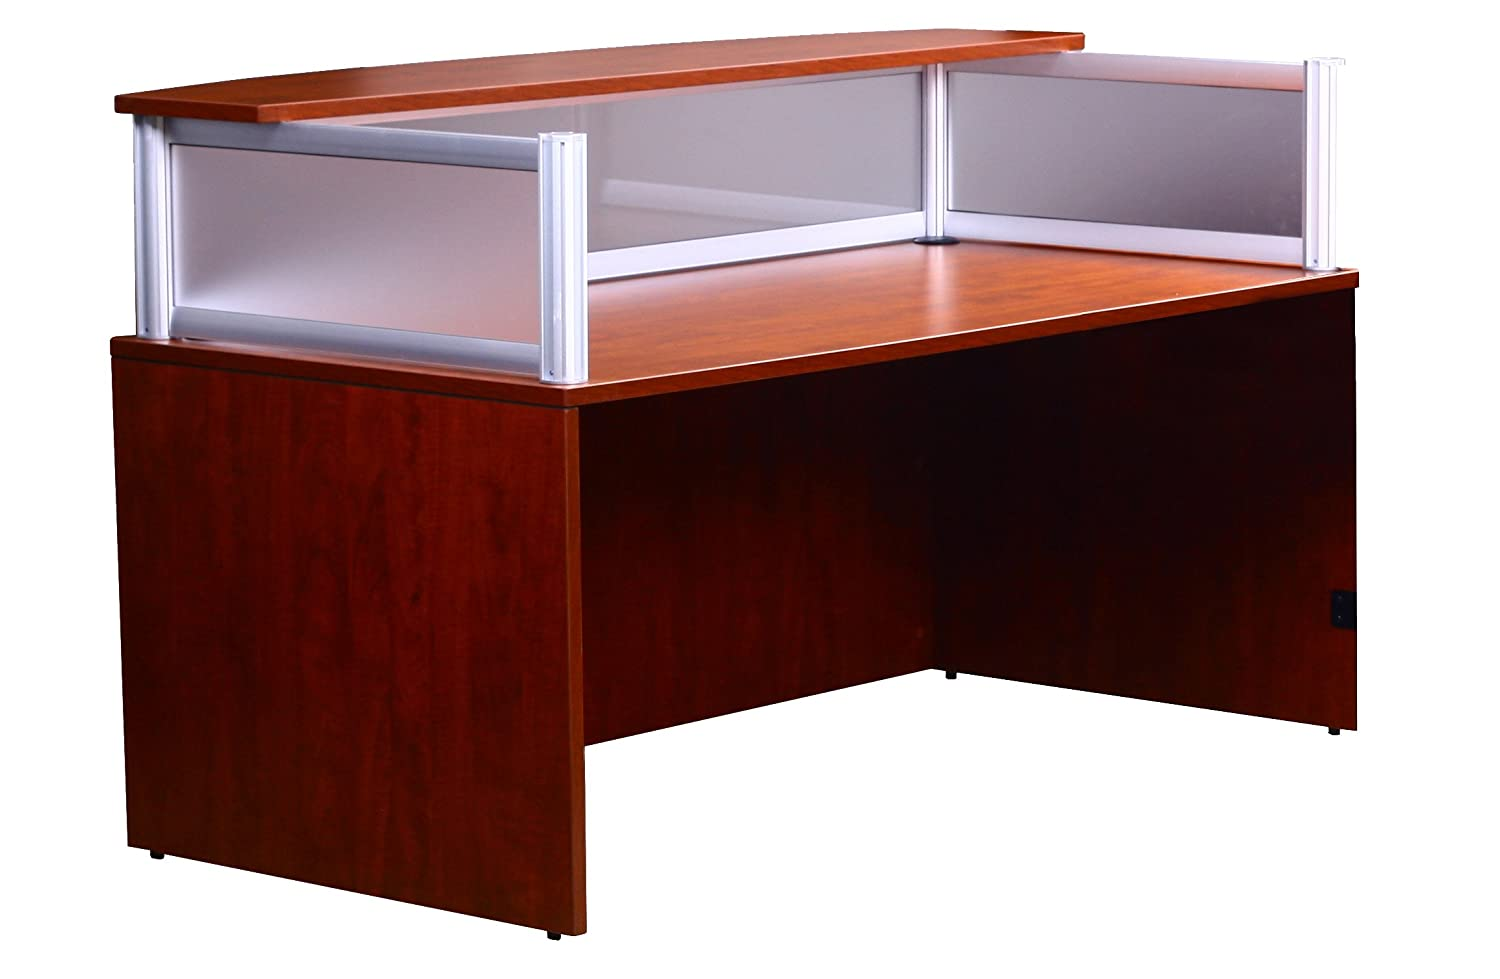 Amazon.com: Boss Plexiglass Reception Desk, Cherry: Kitchen & Dining